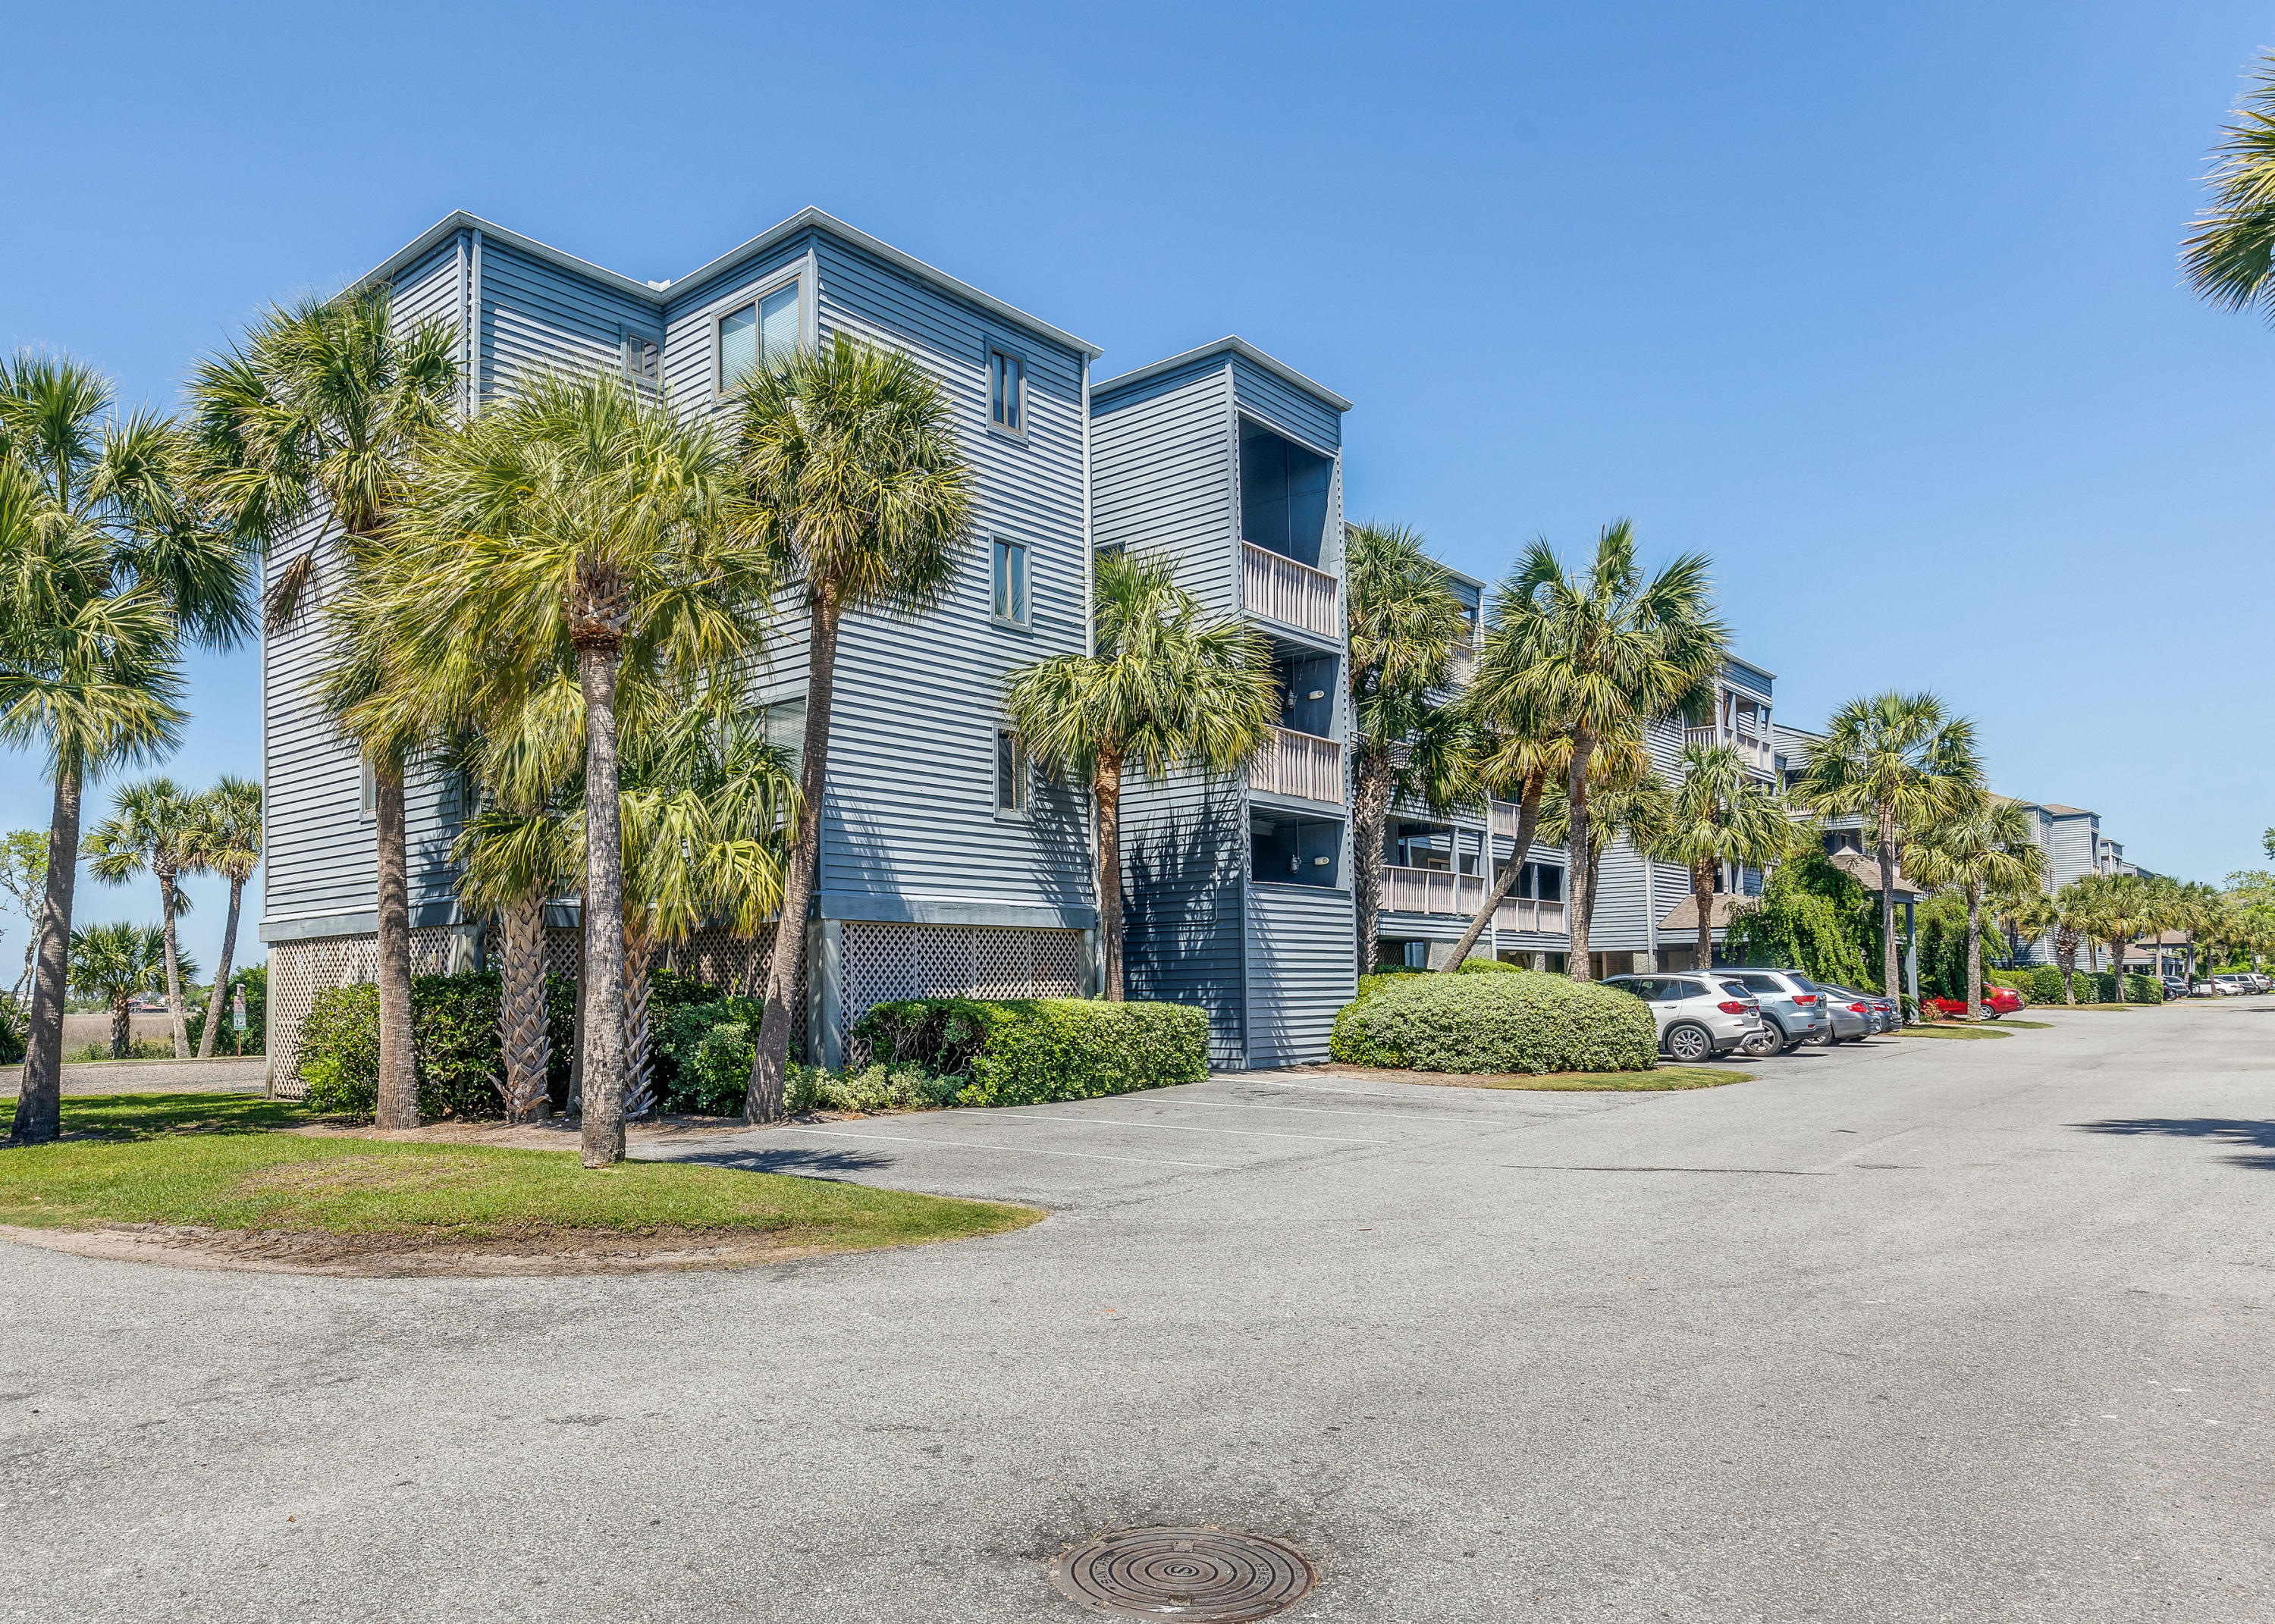 Mariners Cay Homes For Sale - 129 Marsh View Villas, Folly Beach, SC - 37